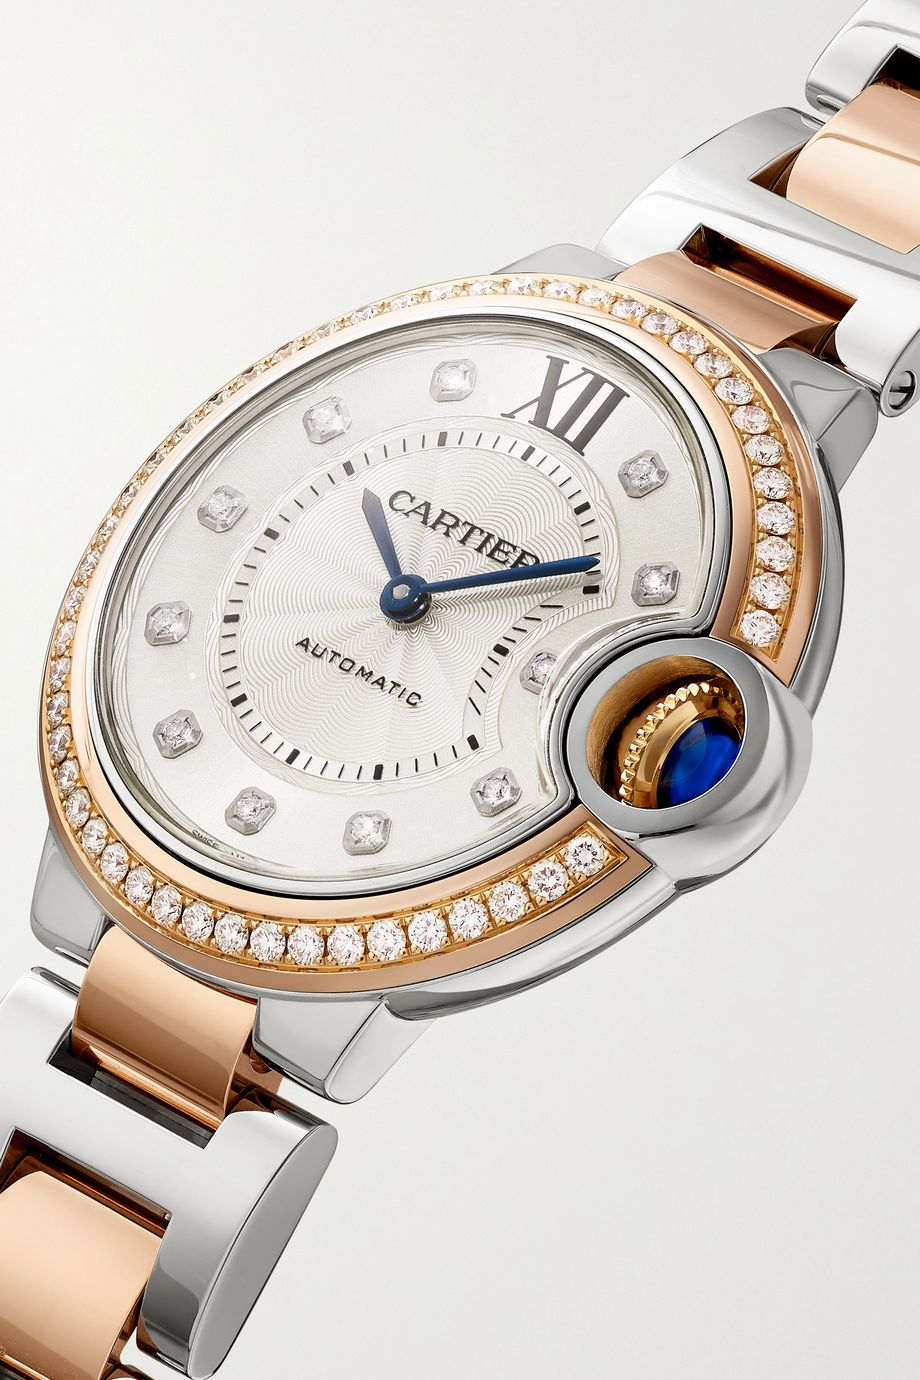 Cartier Ballon Bleu de Cartier Automatic 33mm 18-karat rose gold and stainless steel watch